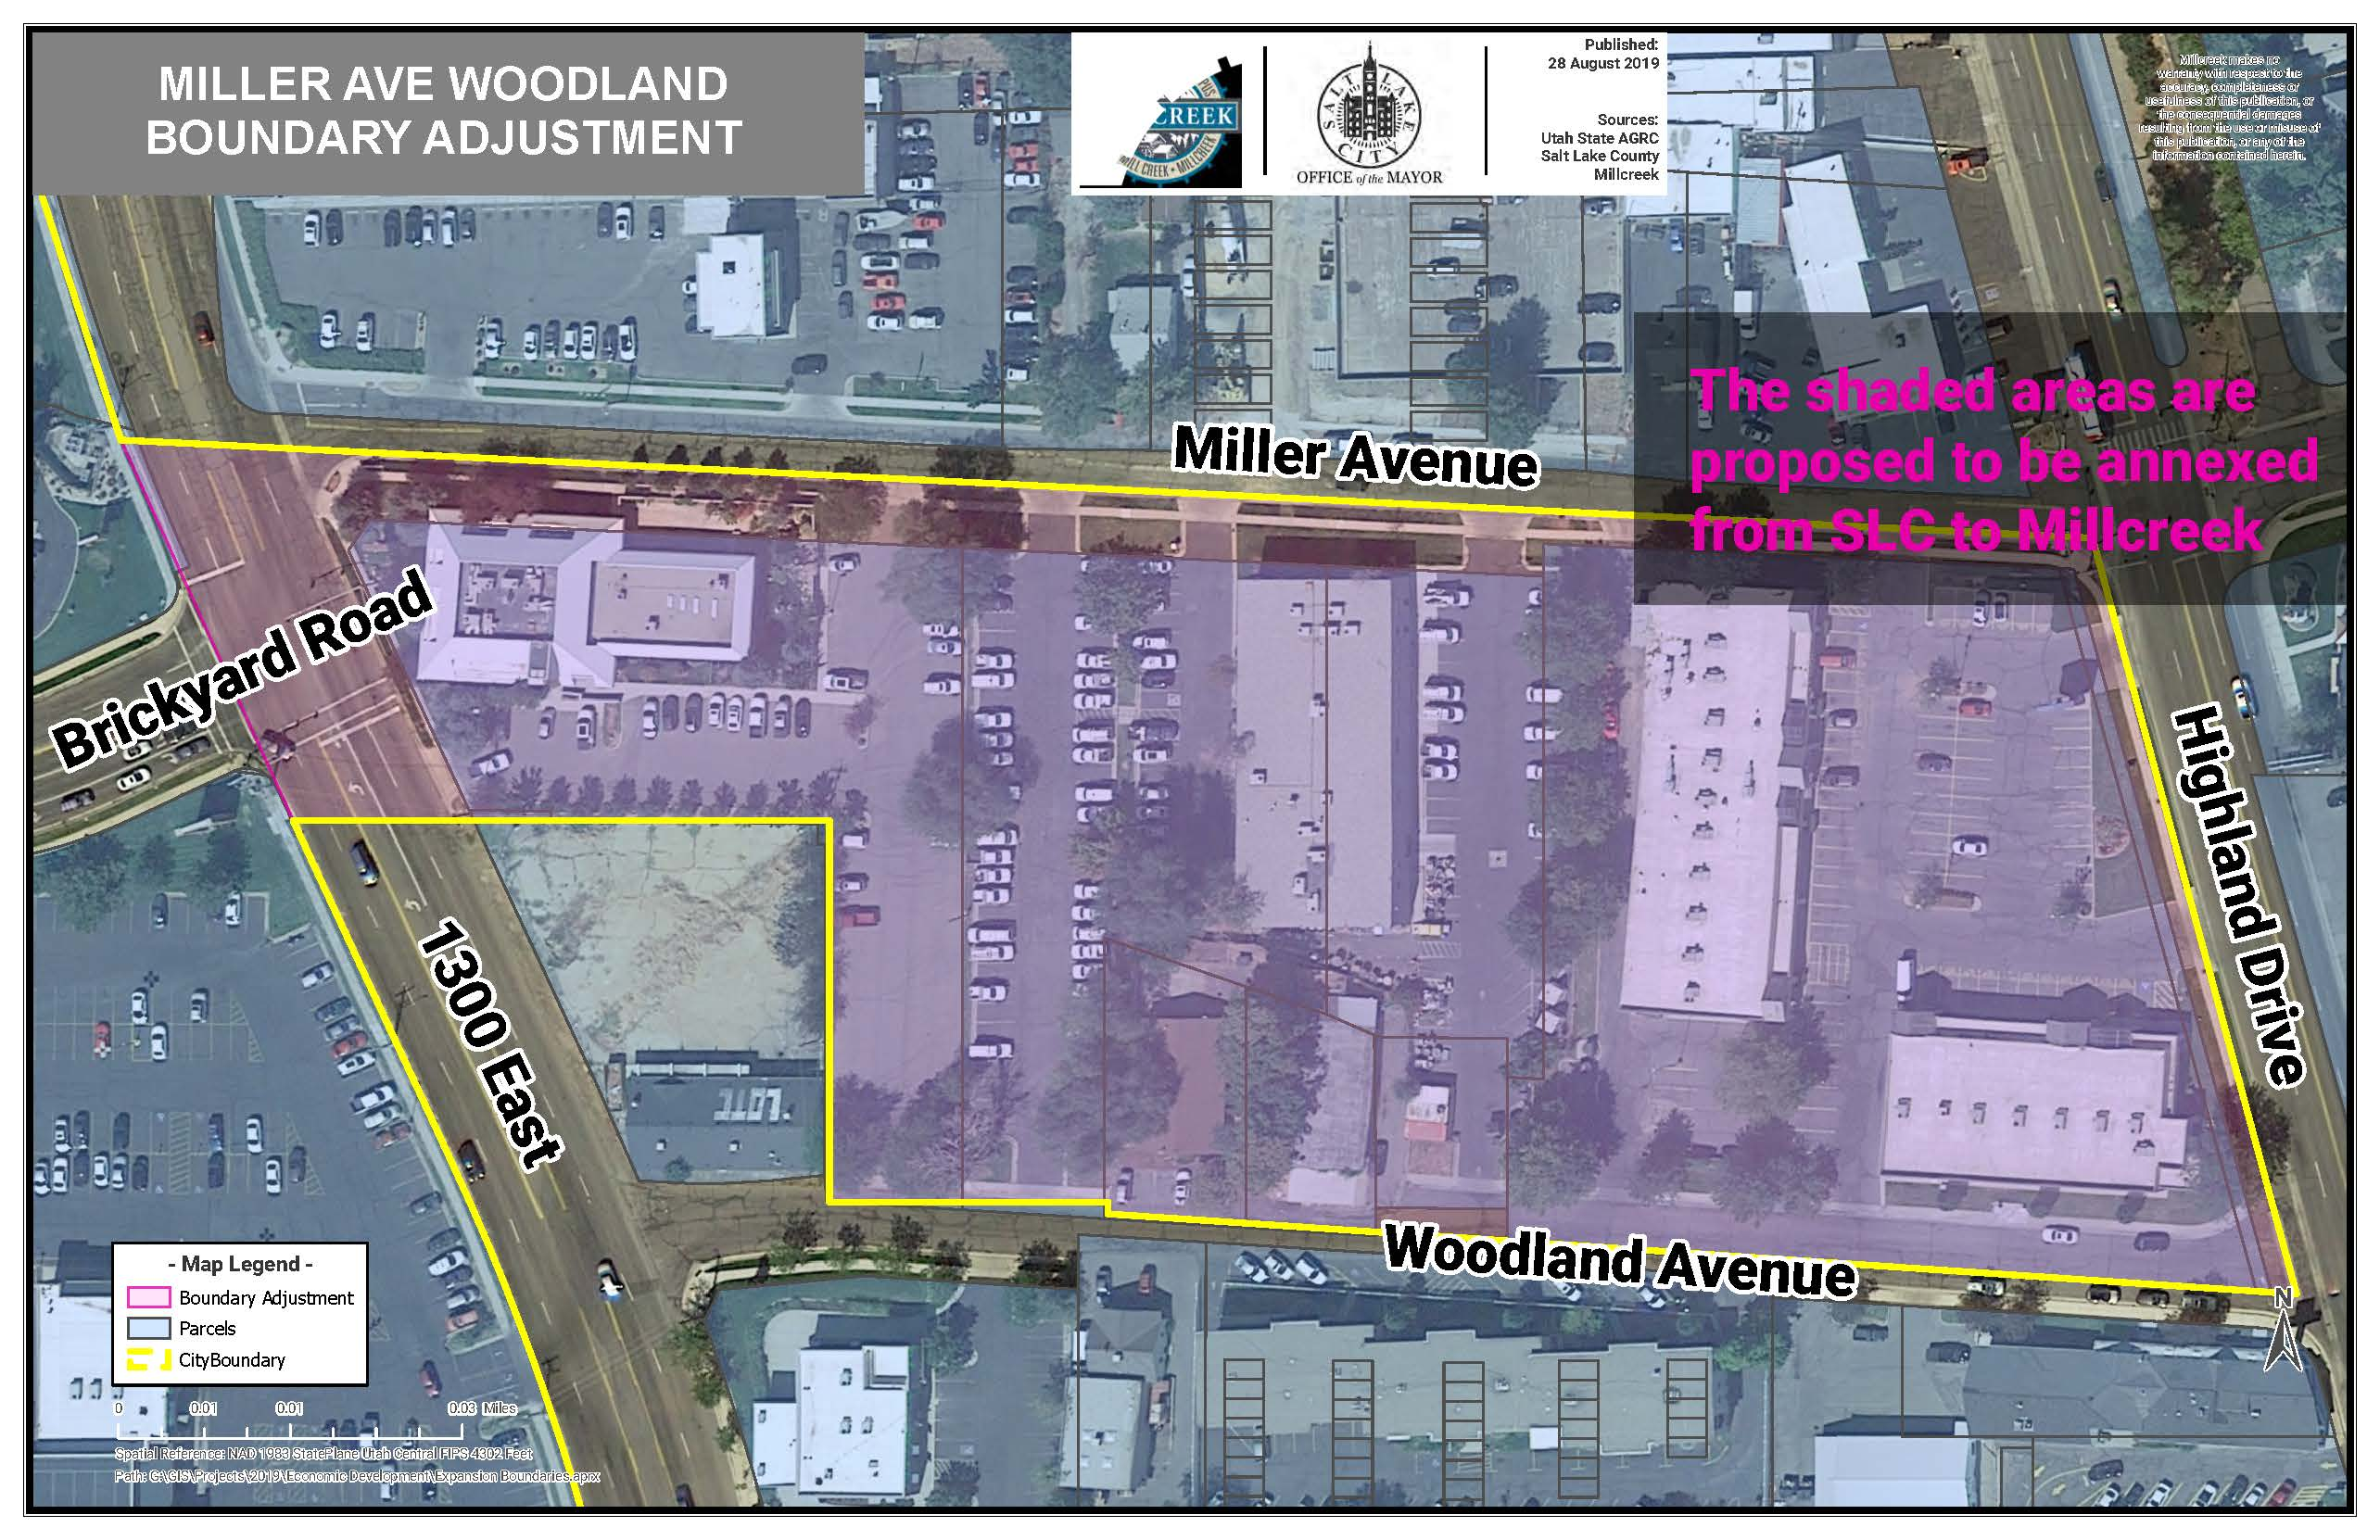 Miller Ave and Woodland Boundary map